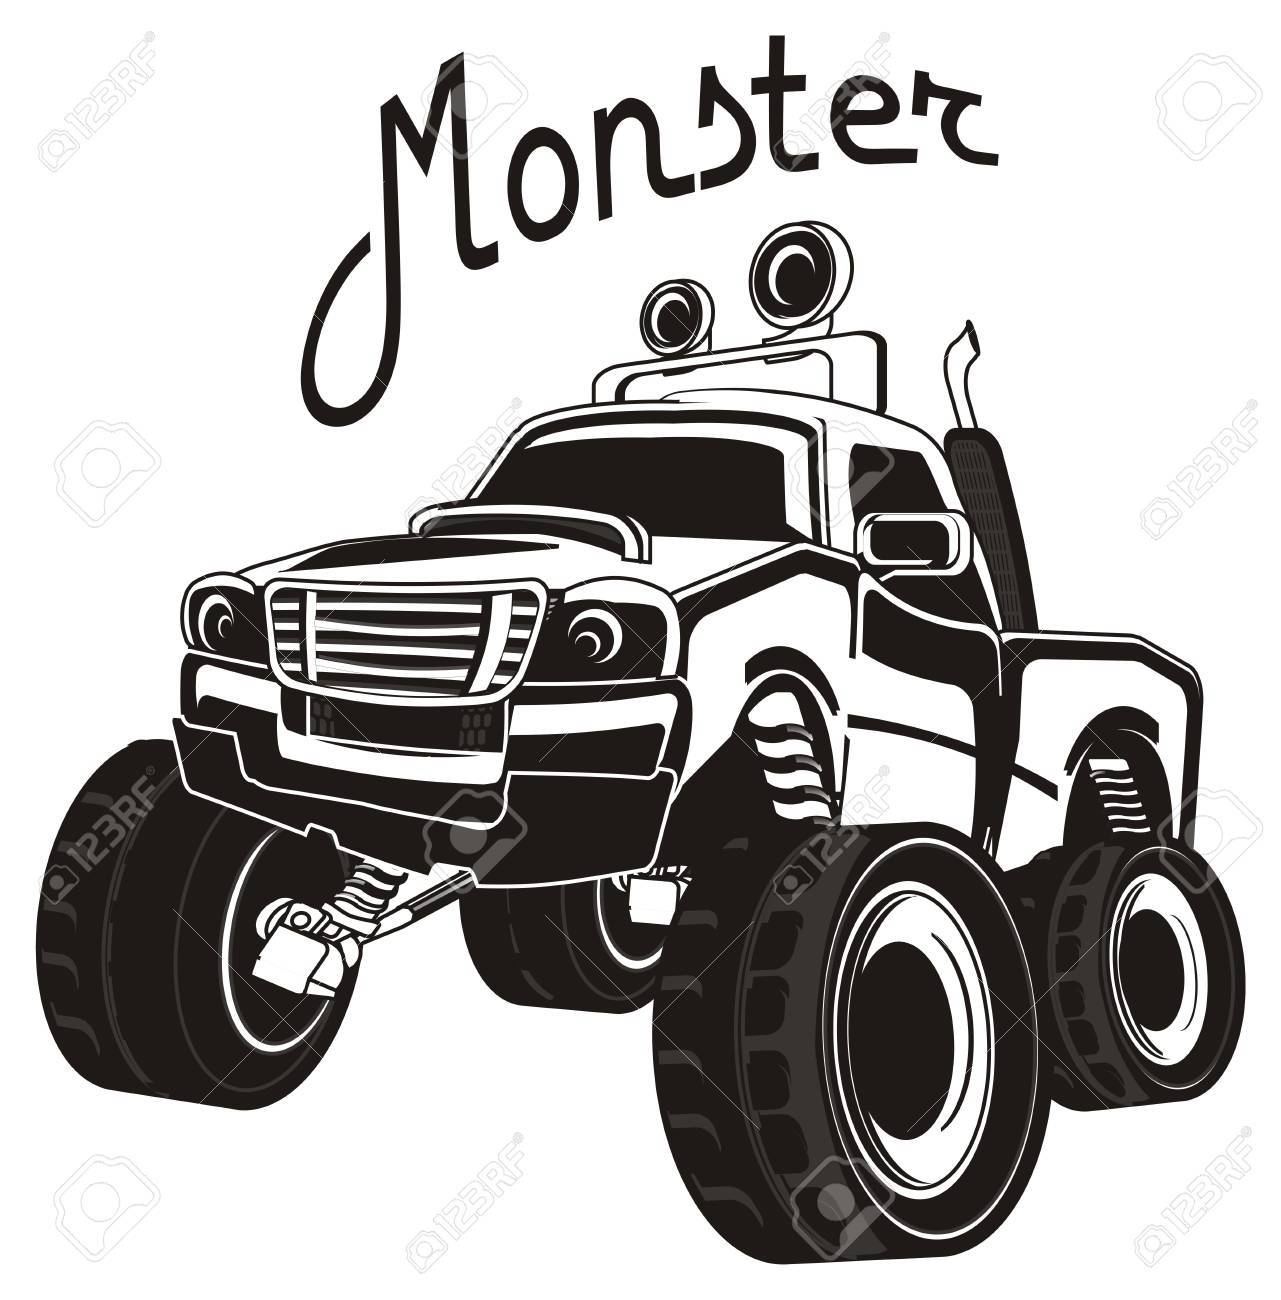 Monster Truck Clipart Black And White - Black And White Monster Truck And His Name Stock Photo, Picture ...